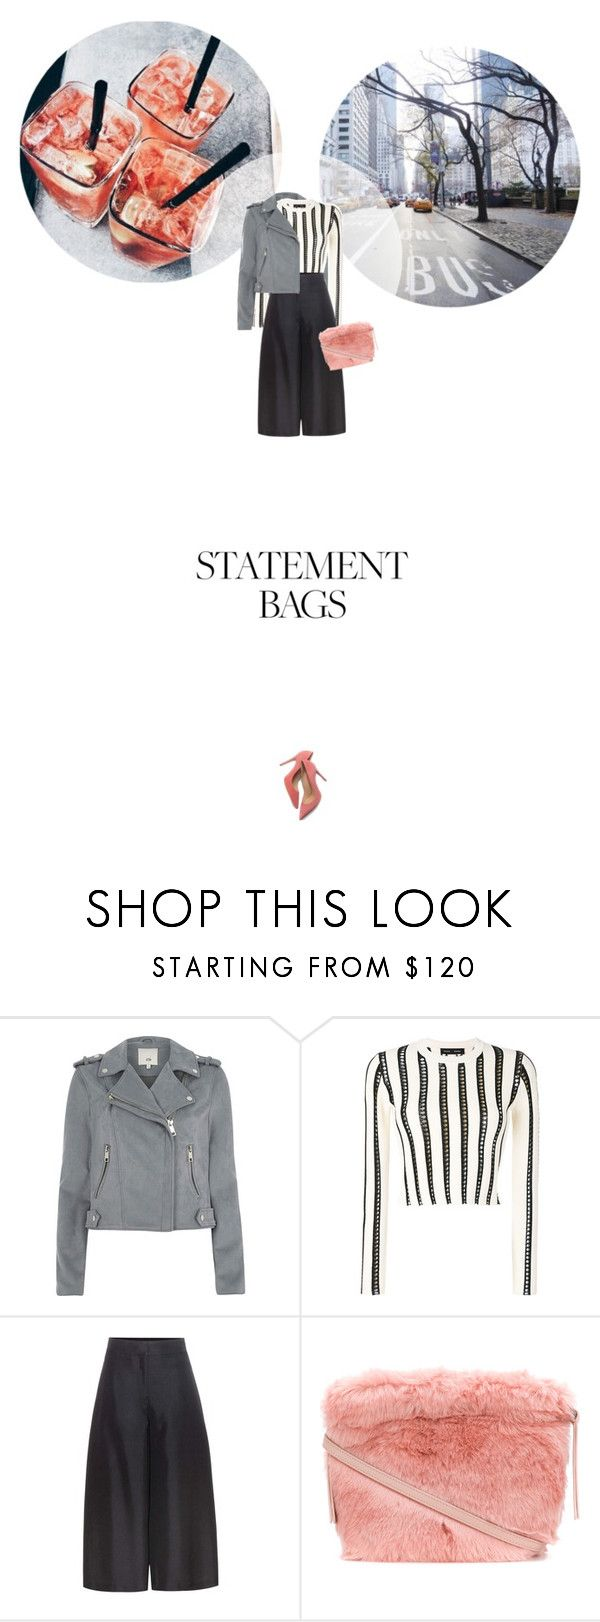 // 1327. Carry On: Statement Bags. by lilymcenvy on Polyvore featuring Proenza Schouler, River Island, Valentino, M. Gemi, Furla and statementbags